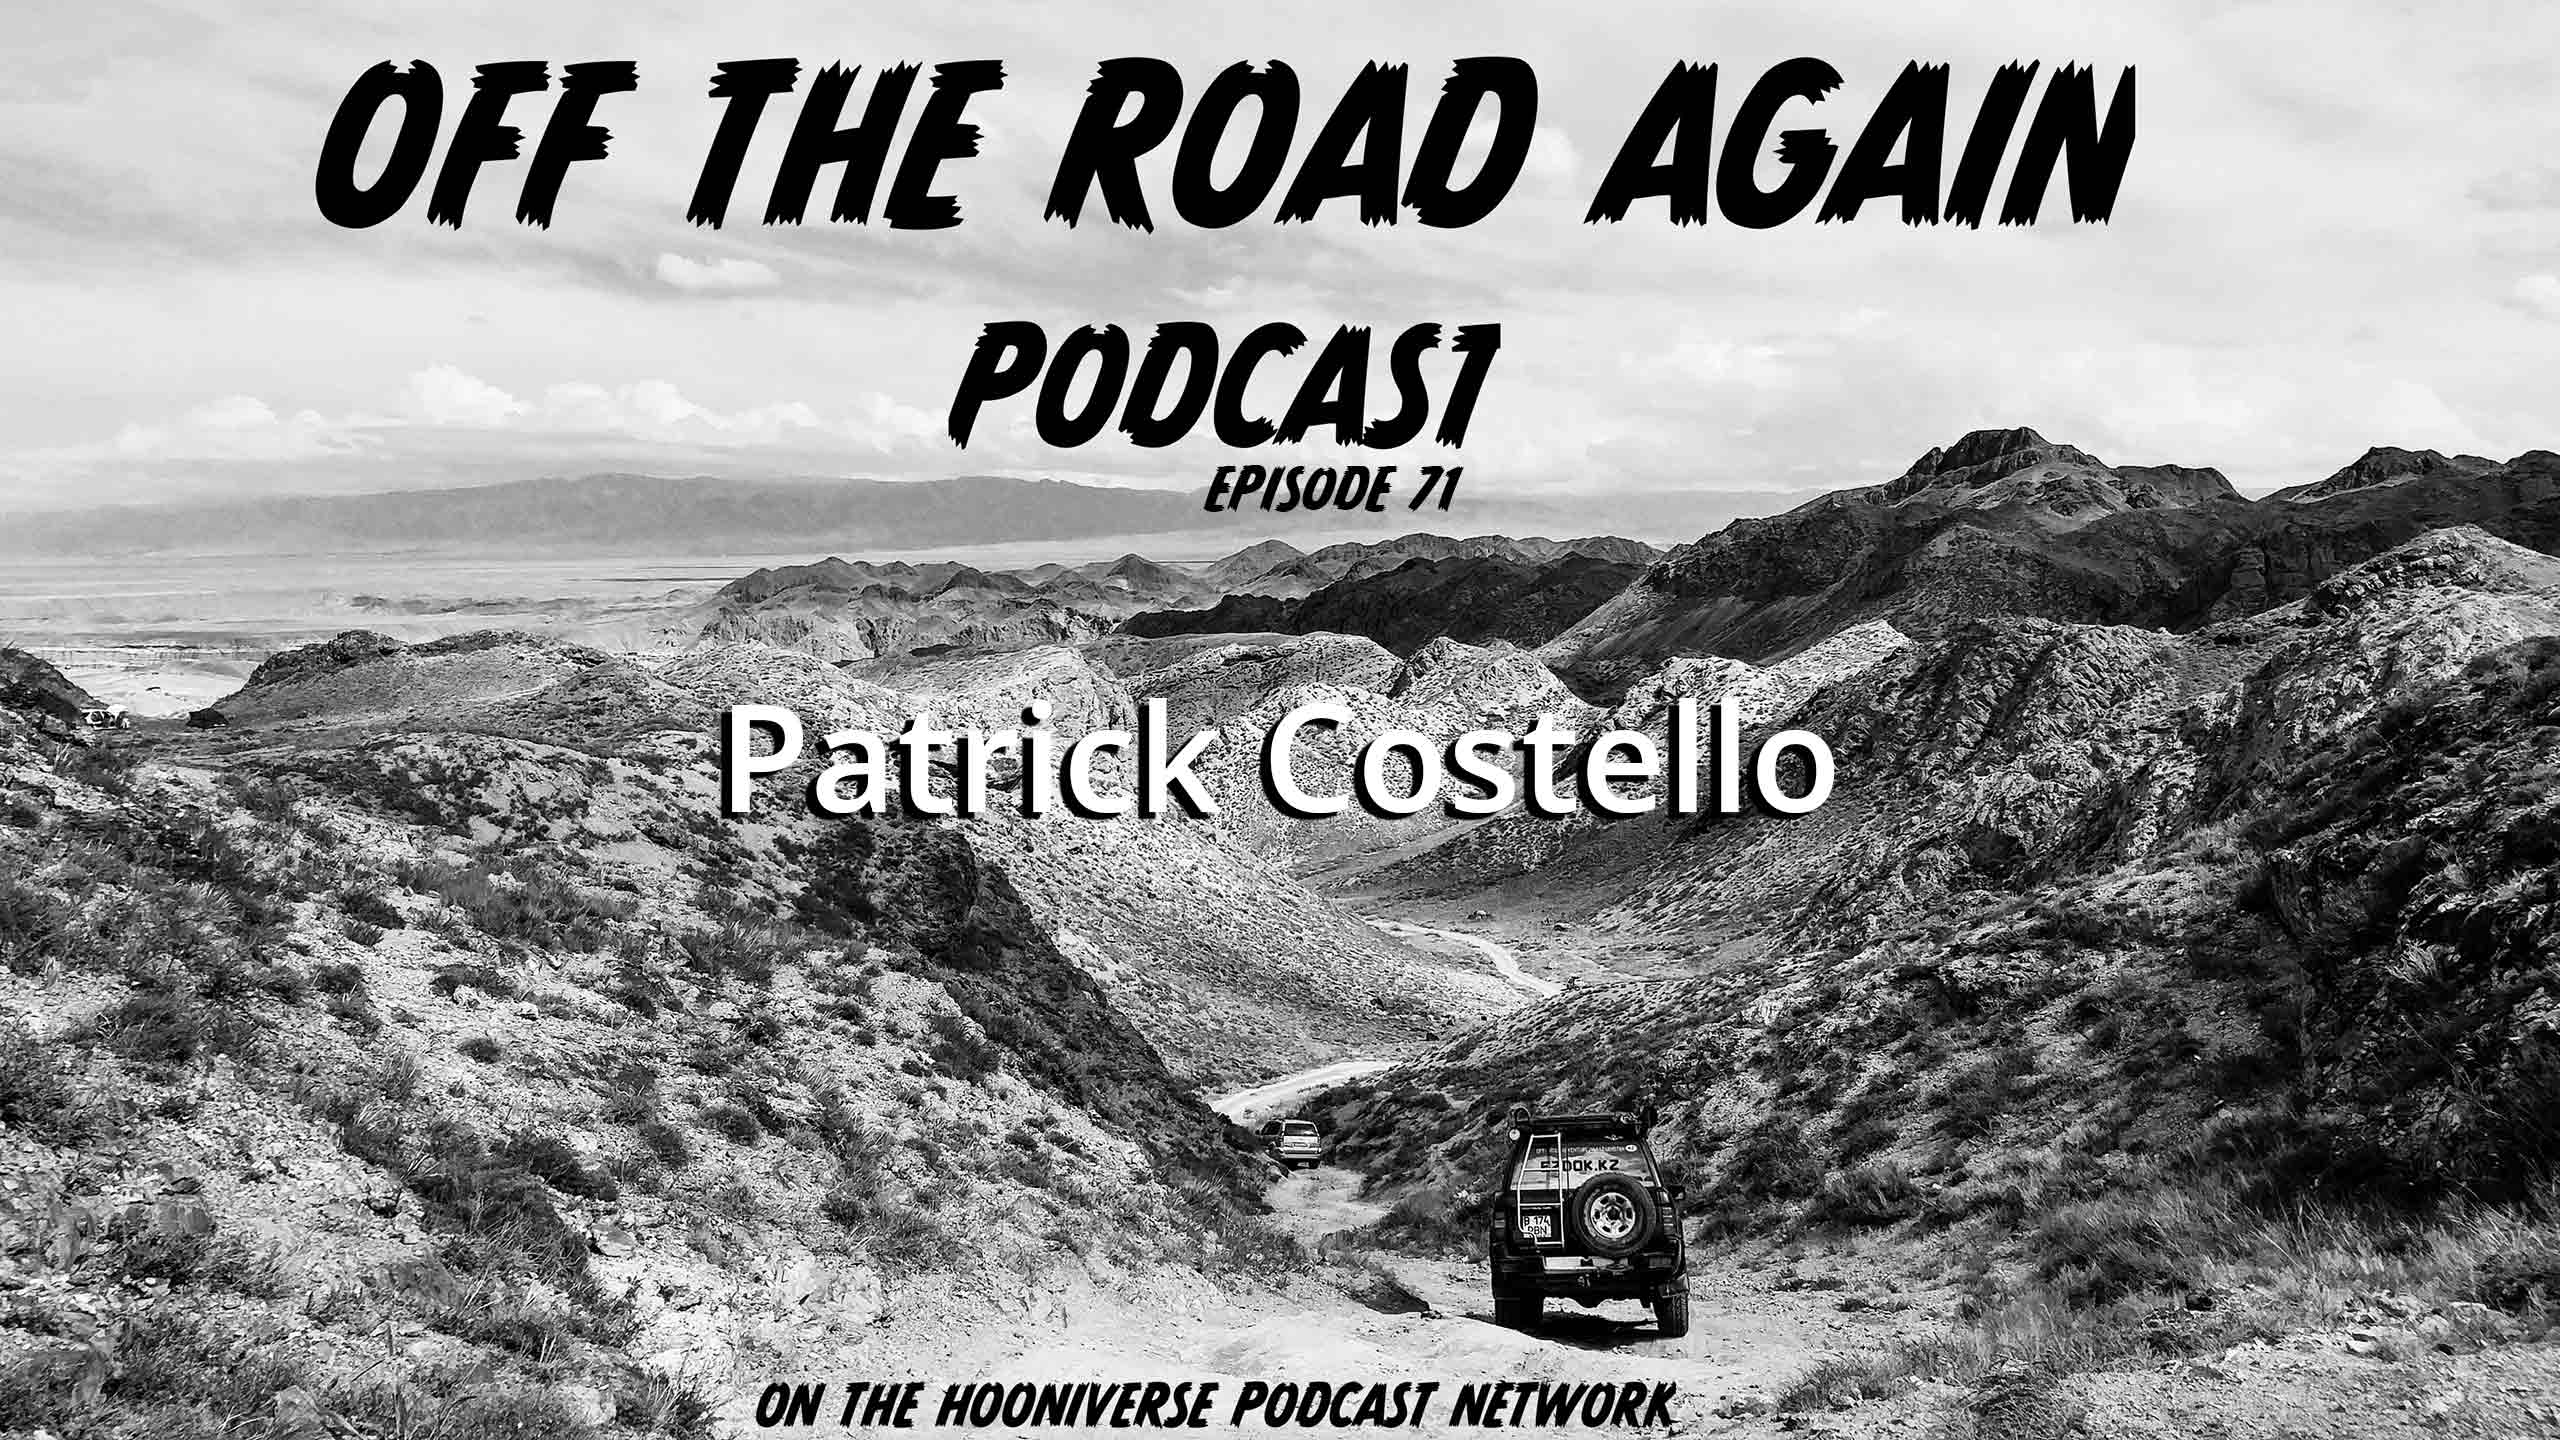 Patrick-Costello-Off-The-Road-Again-Podcast-Episode-71